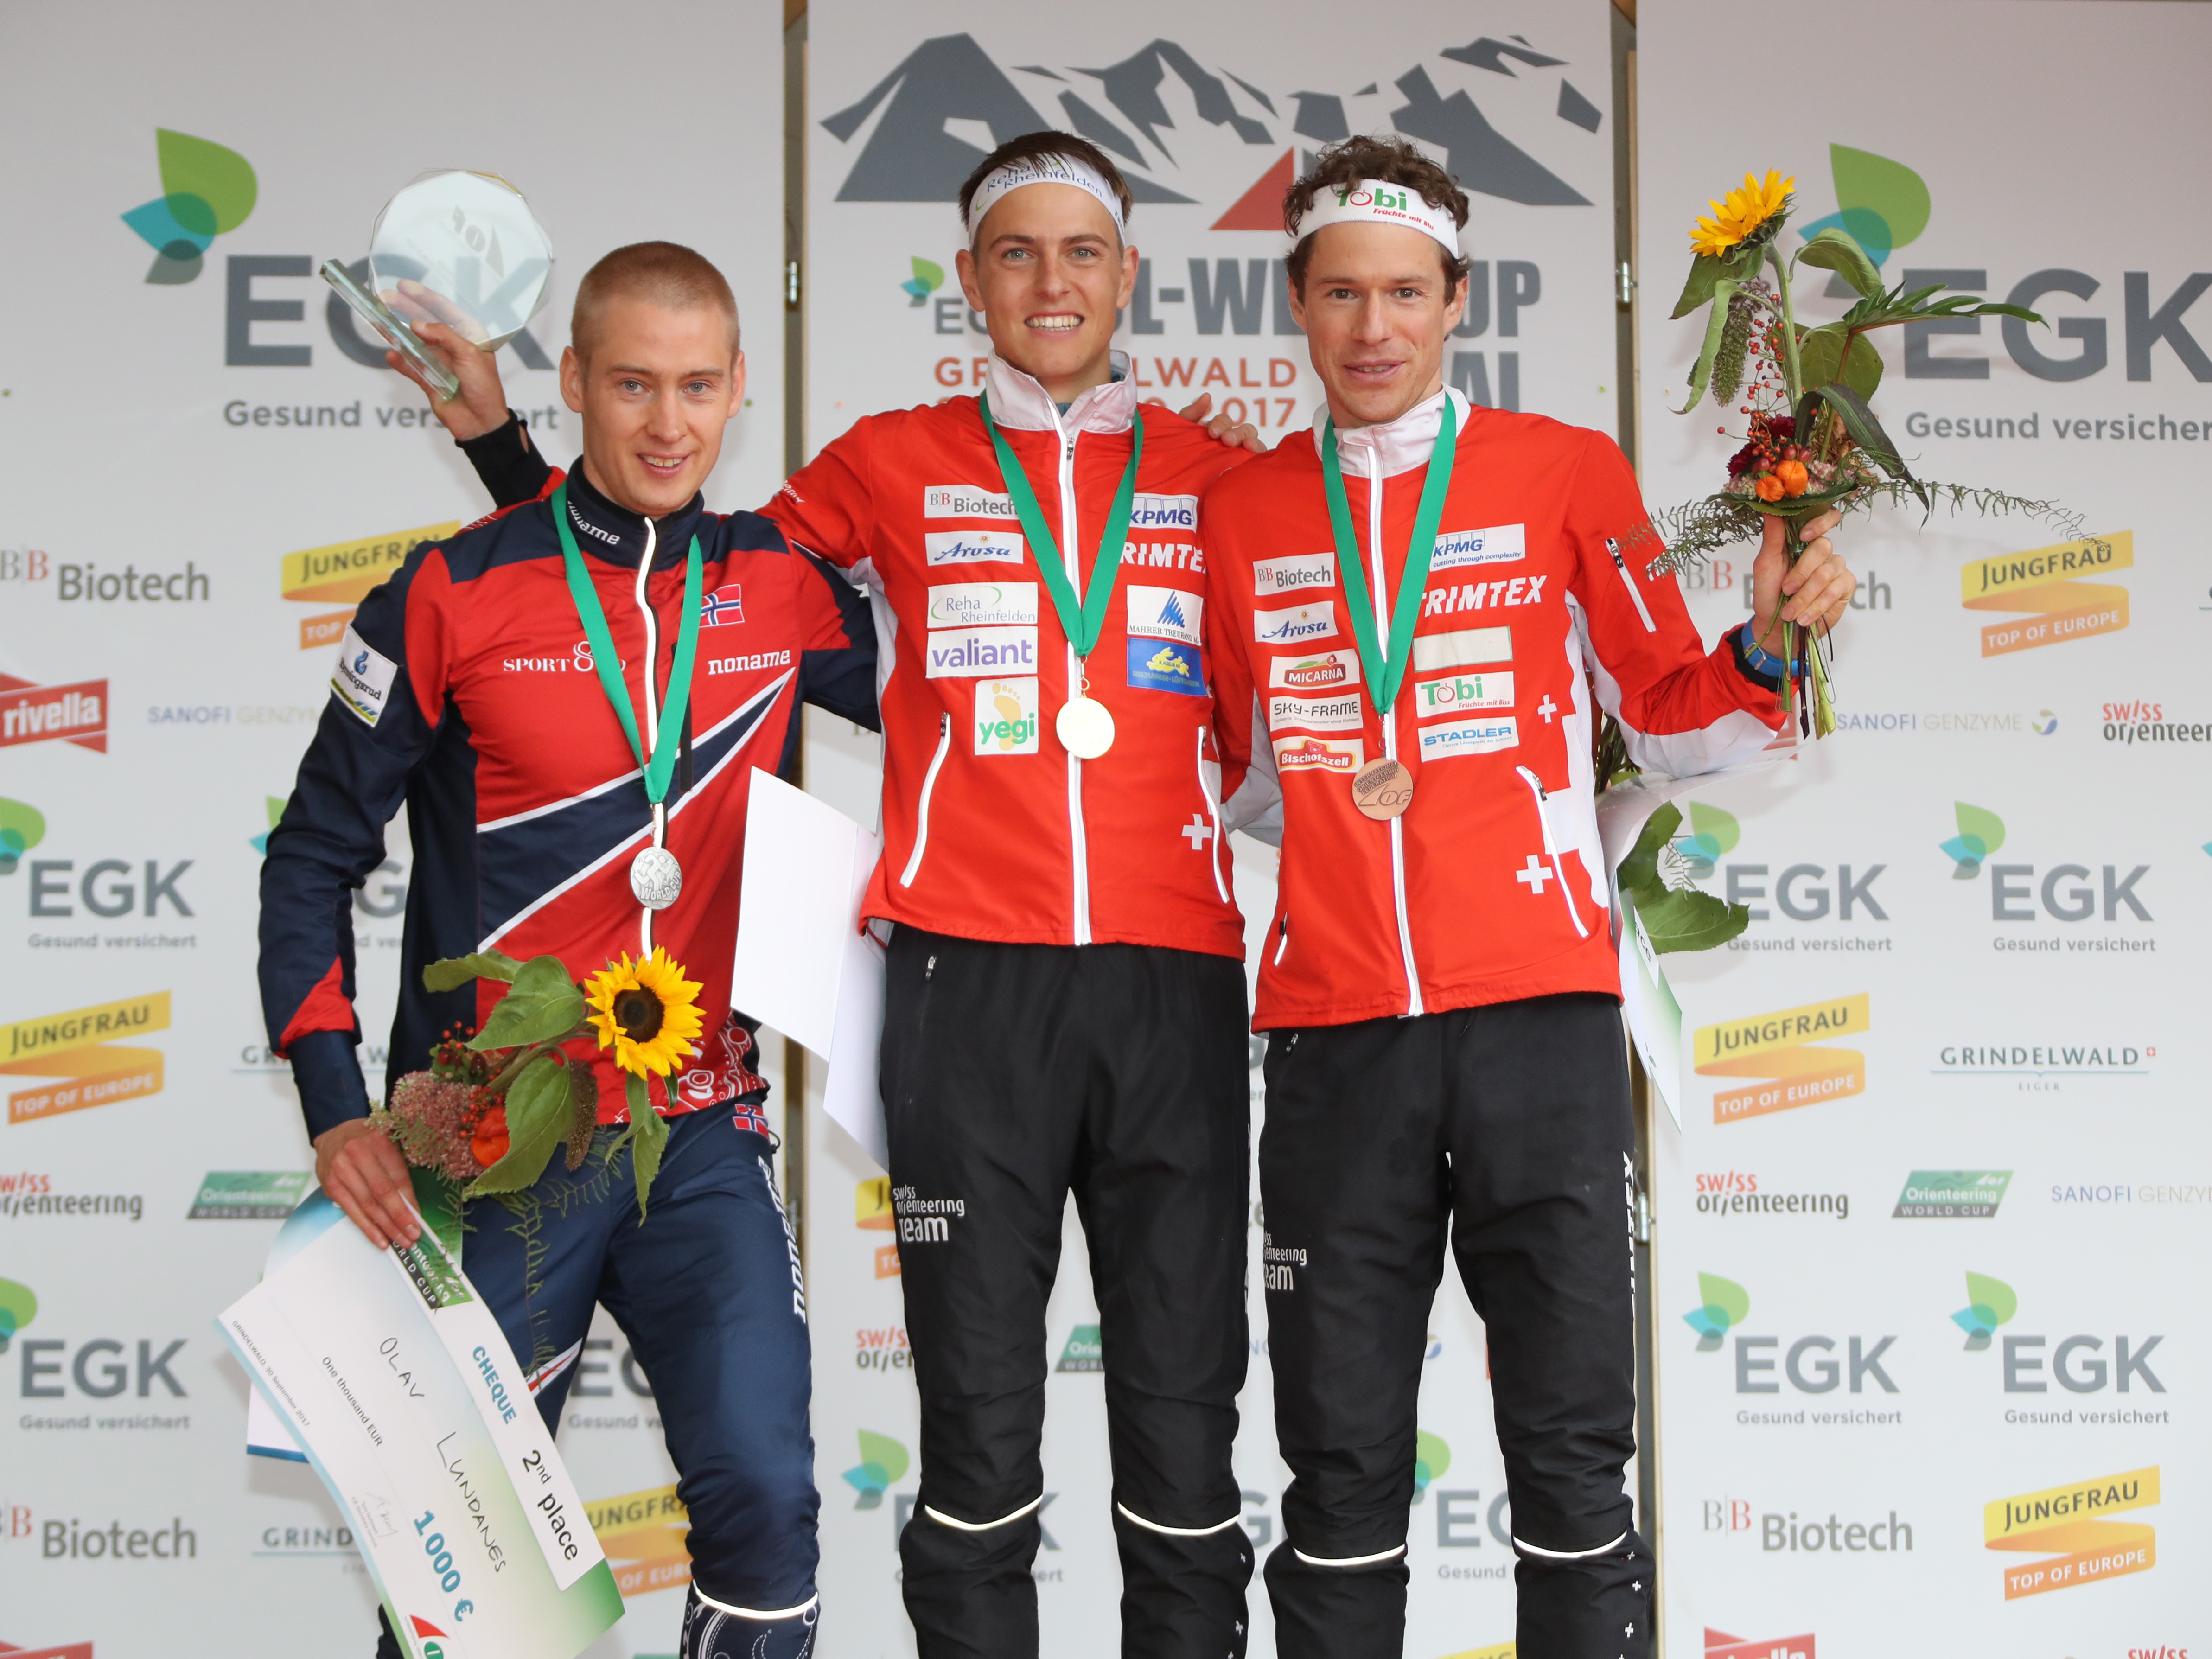 Olav Lundanes (NOR, 2nd), Matthias Kyburz (SUI, 1st) & Daniel Hubmann (SUI, 3rd) over all in the Orienteering World Cup 2017 Men